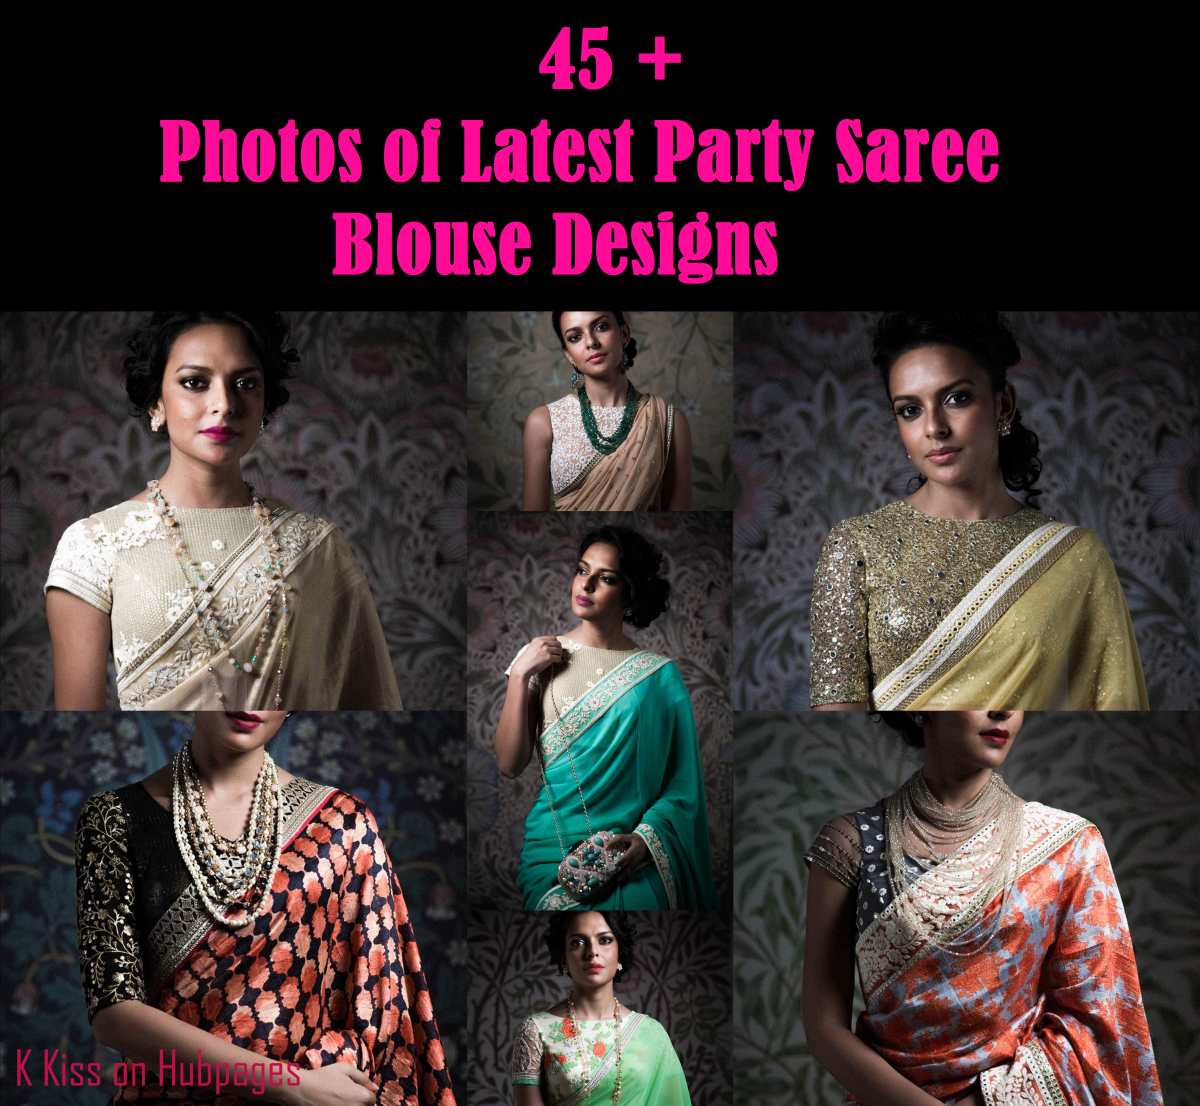 Tips and Photos of Latest Party Saree Blouse Designs